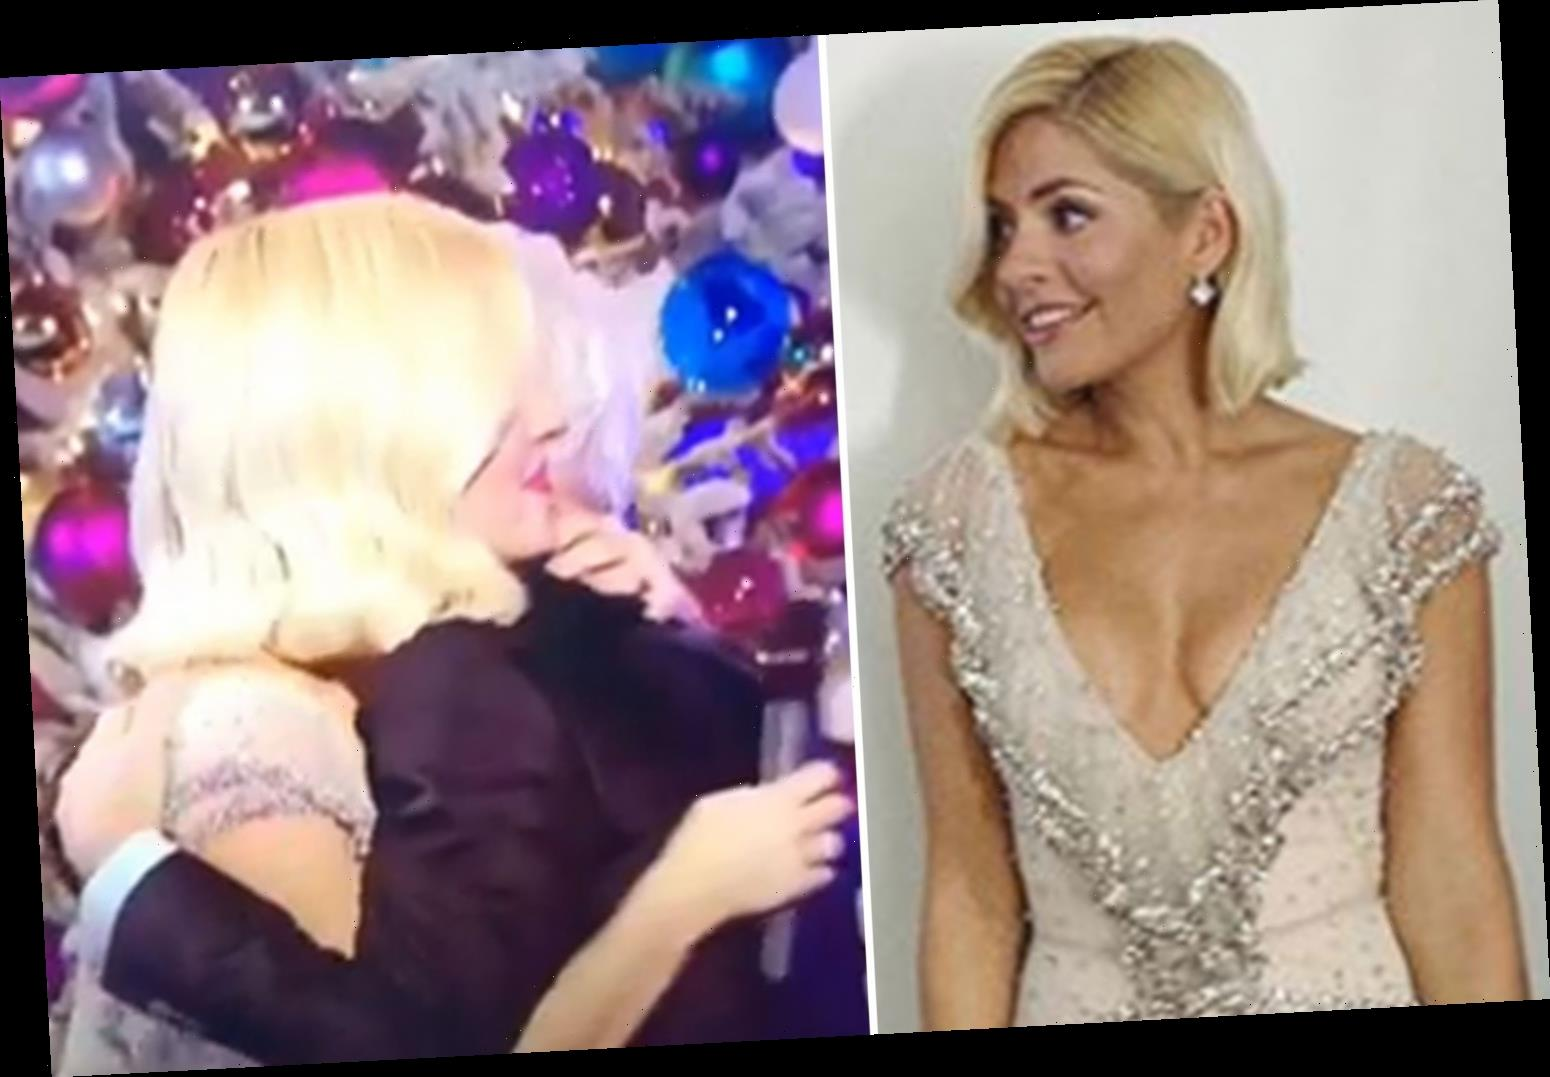 Holly Willoughby dismisses Phillip Schofield feud claims as she shares video of them singing and hugging